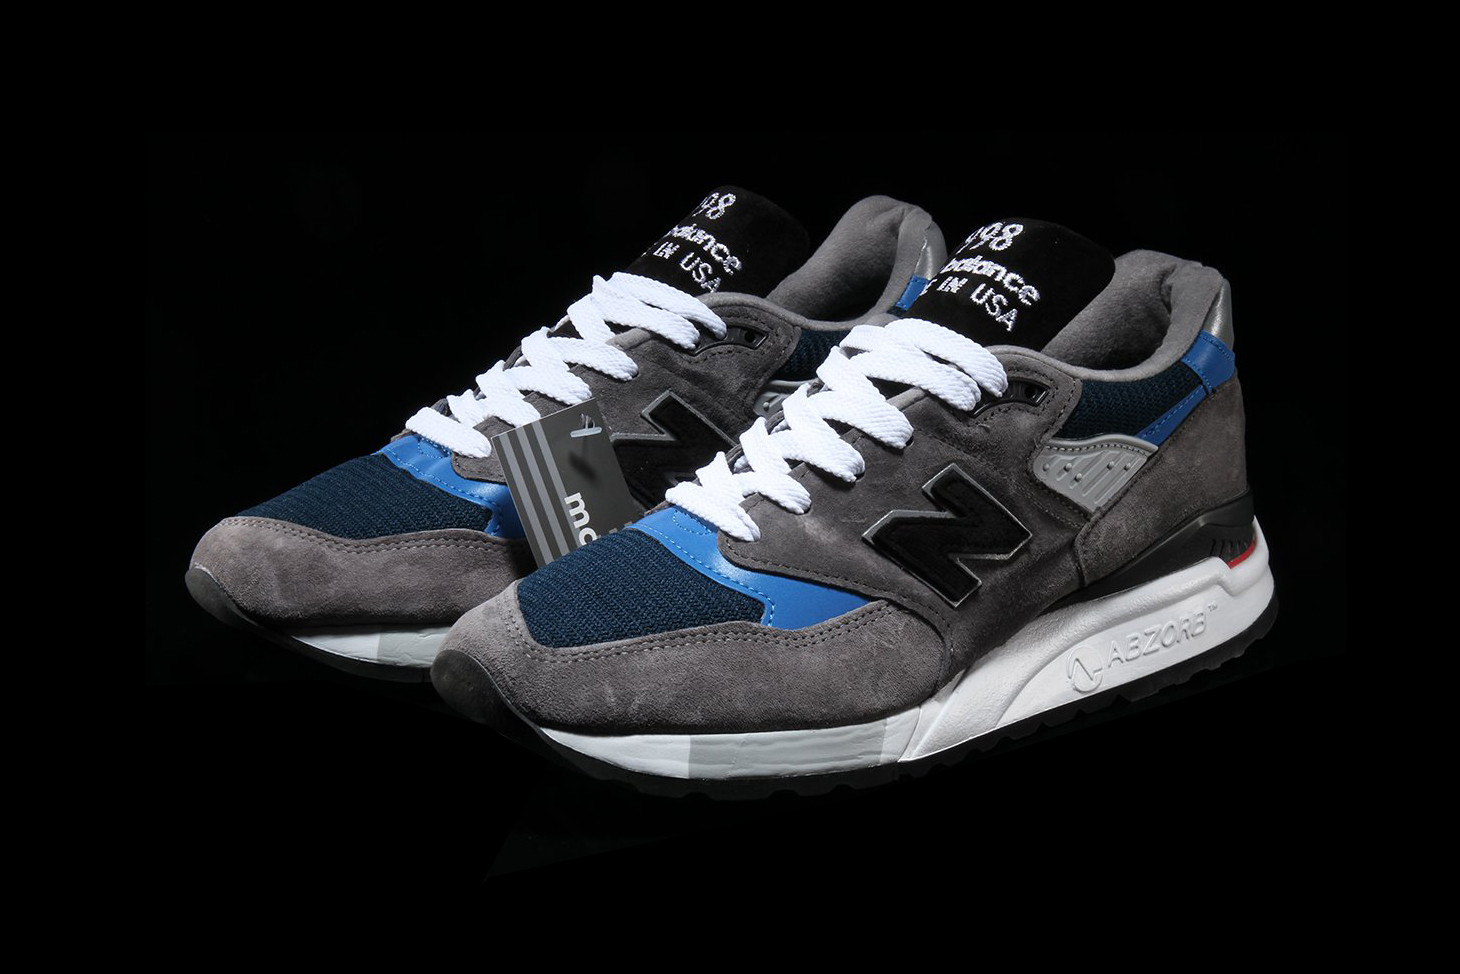 87f6d90ff45d ... get the latest new balance made in usa 998 colorway is available right  now for 180.00